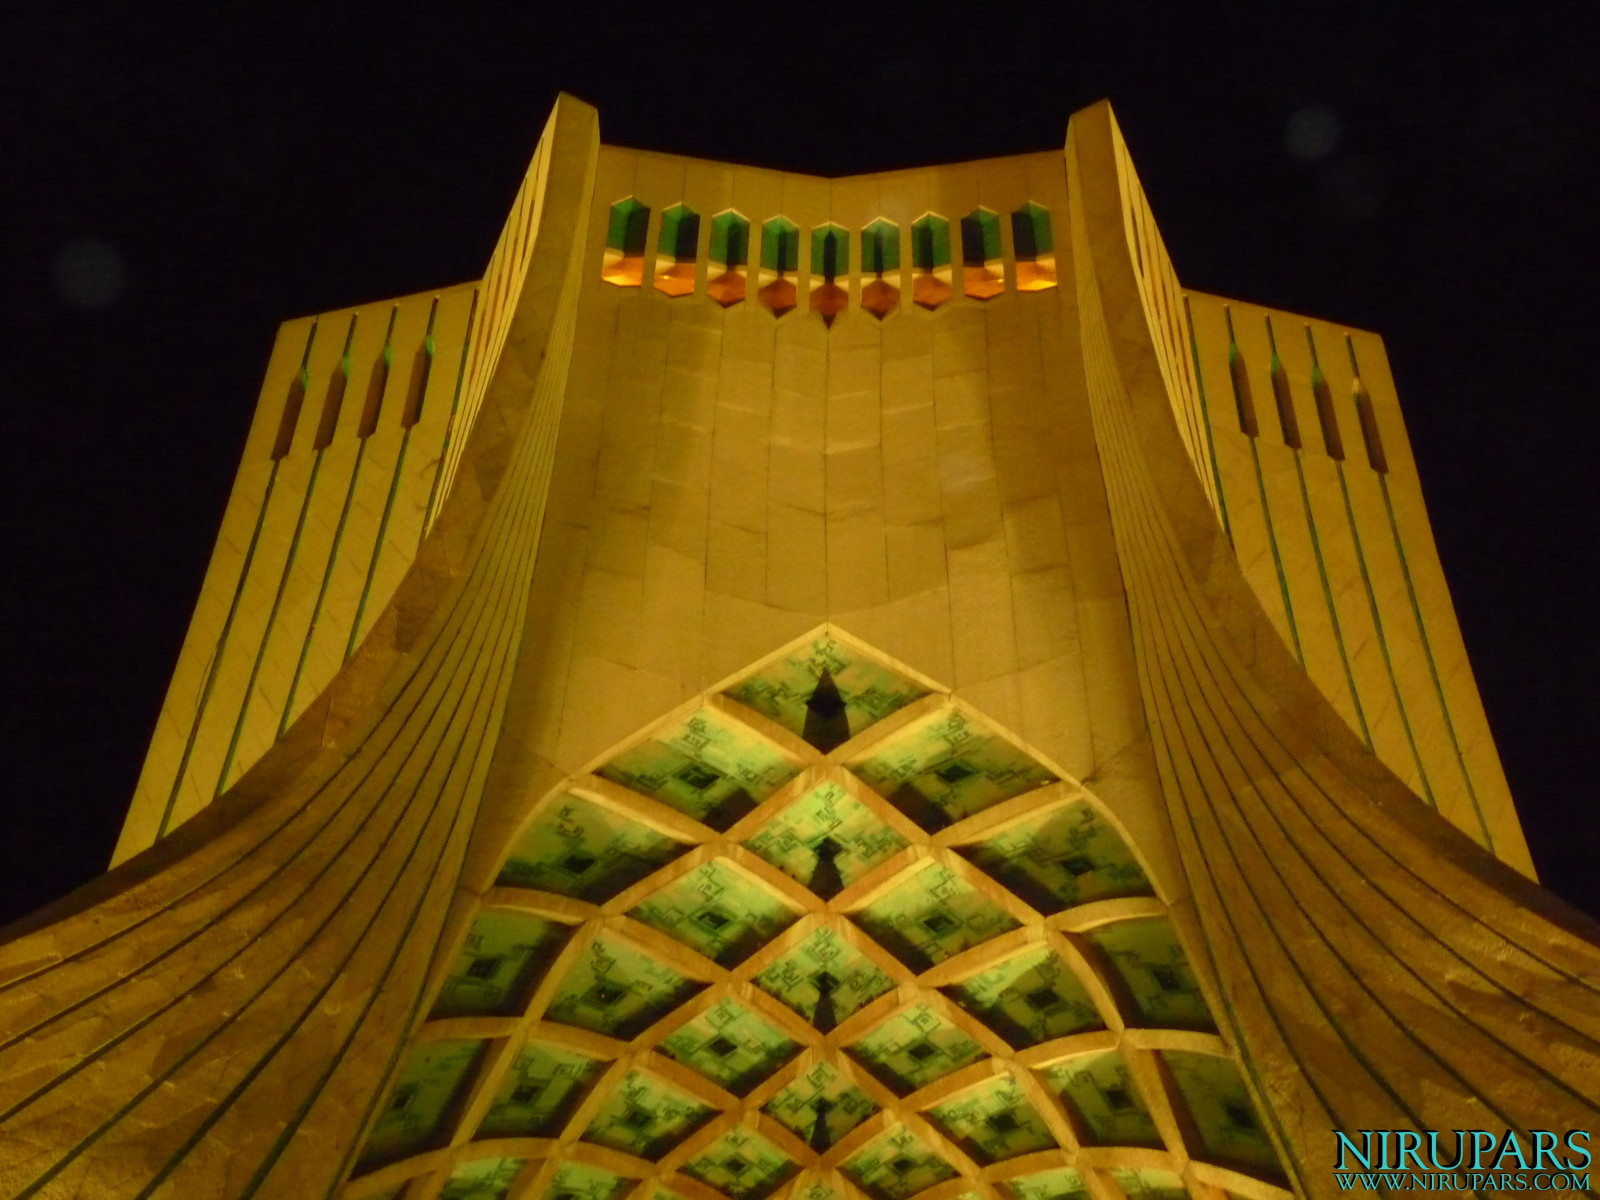 Meydan-e Azadi - Night Yellow